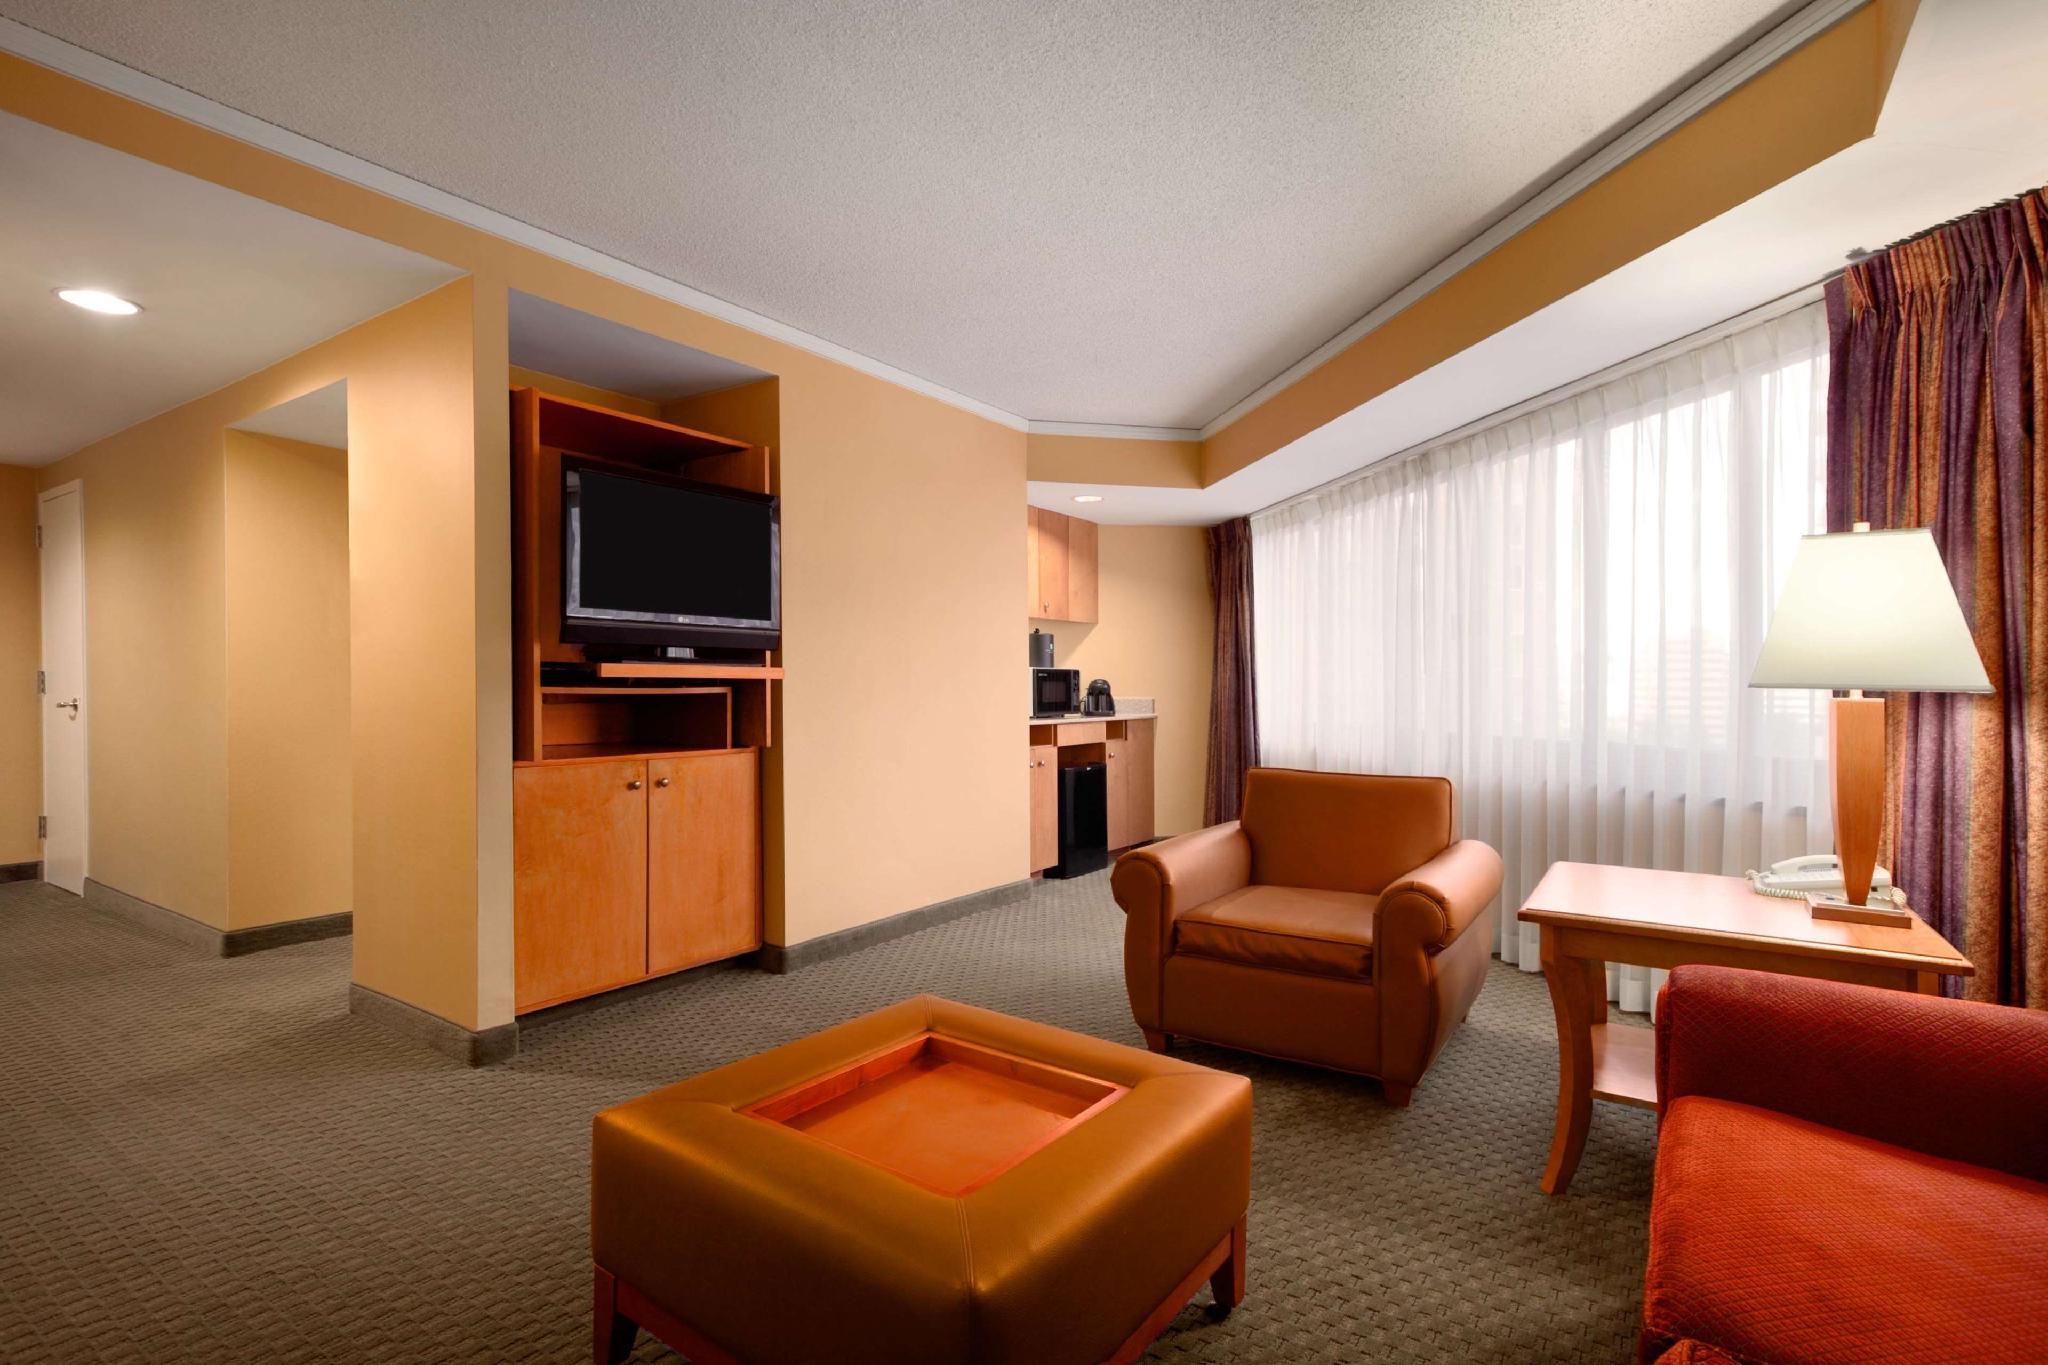 Embassy Suites by Hilton Crystal City National Airport, Arlington